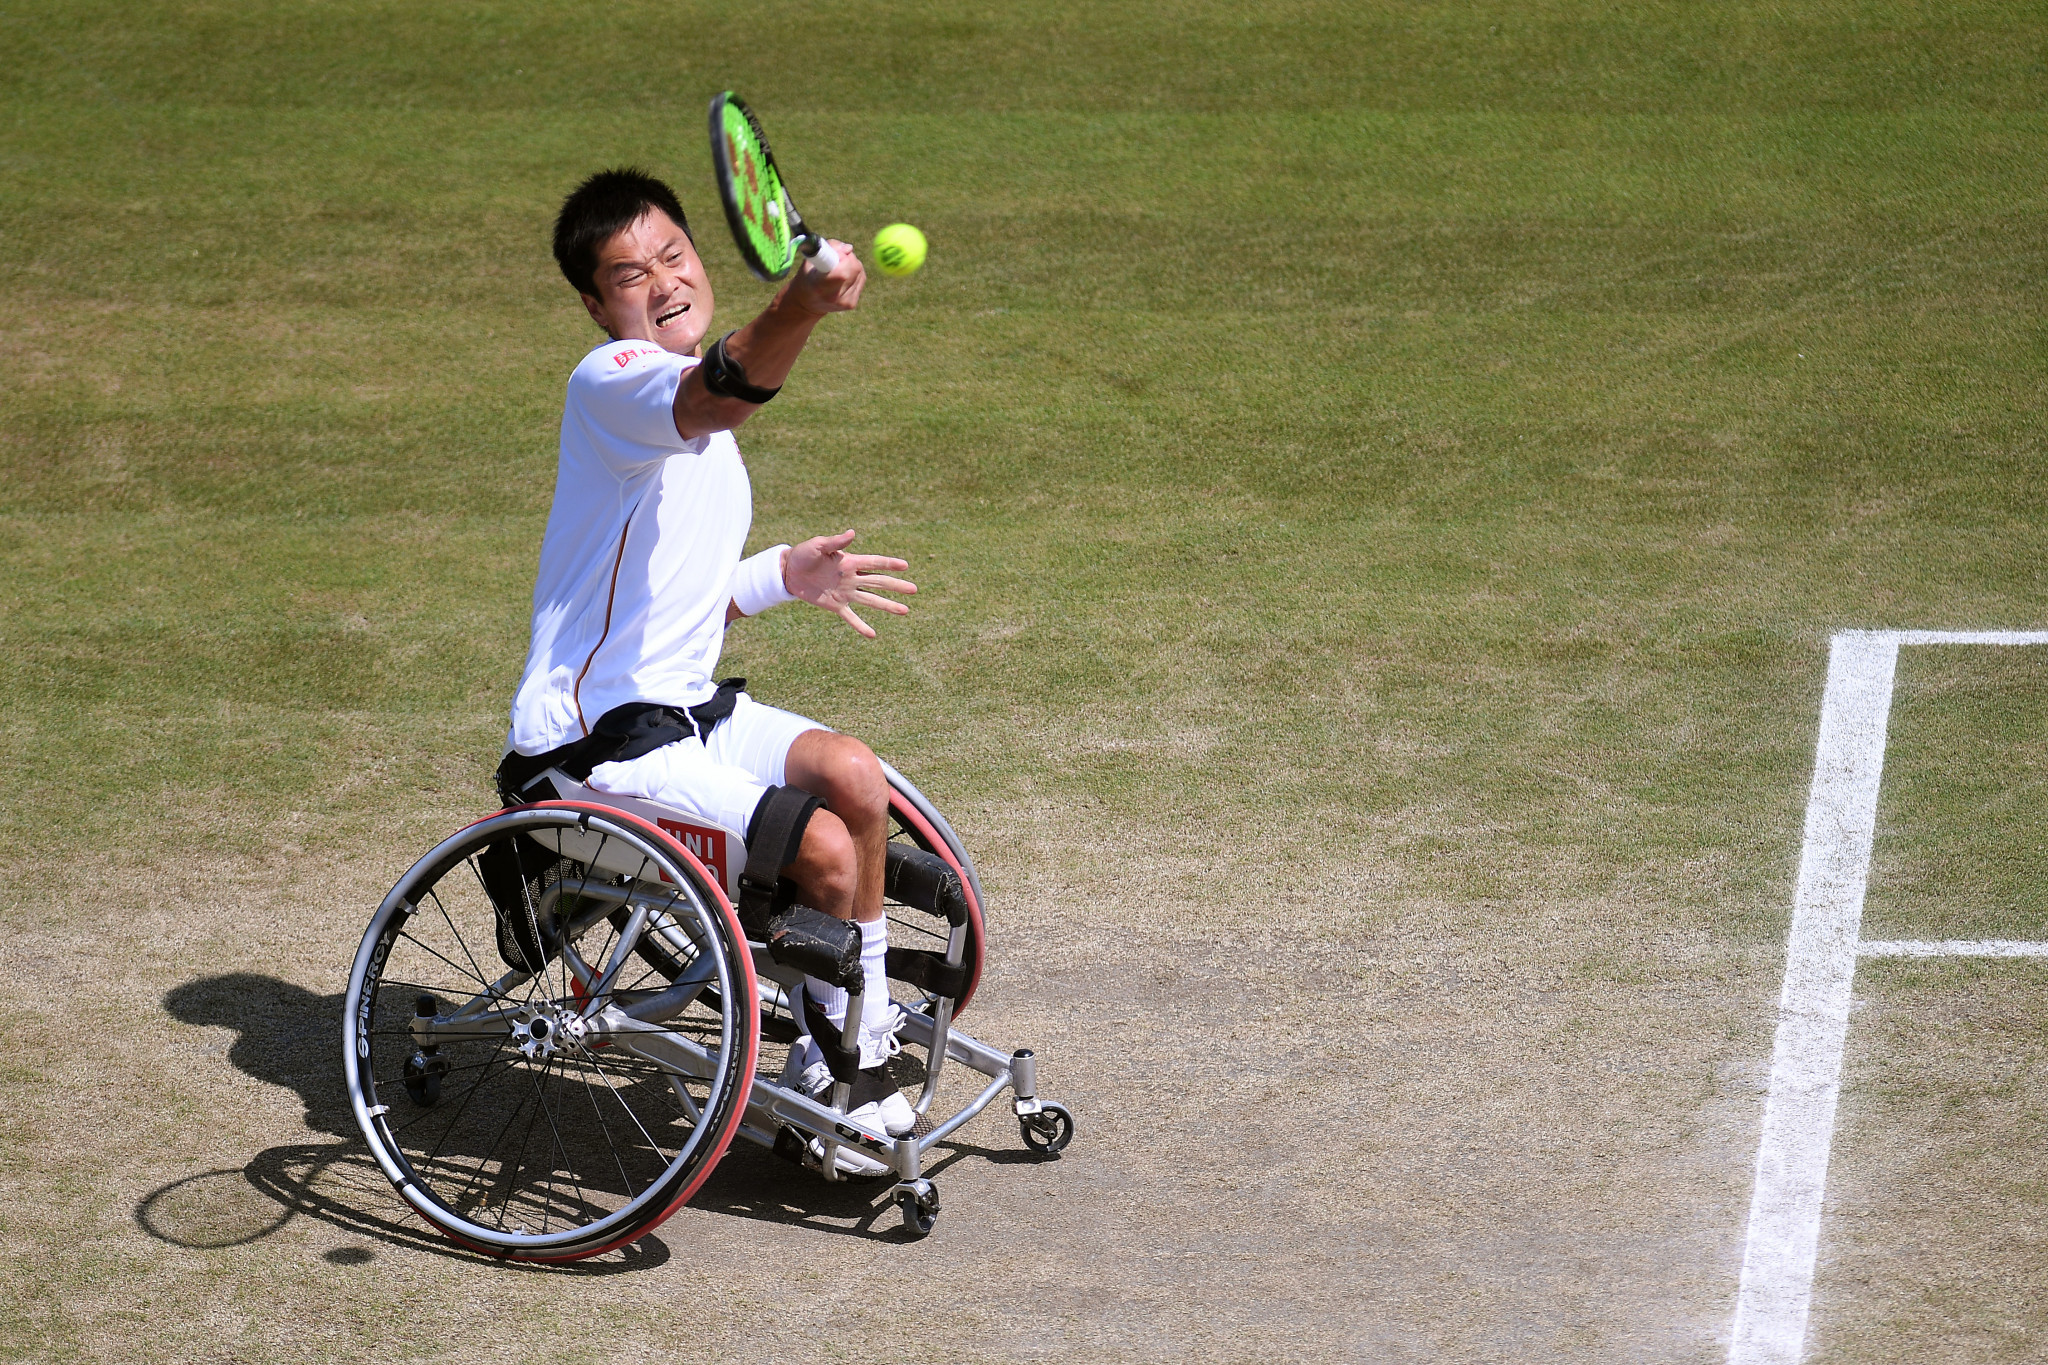 Japan's Shingo Kunieda is one win away from his first Wimbledon title ©Getty Images